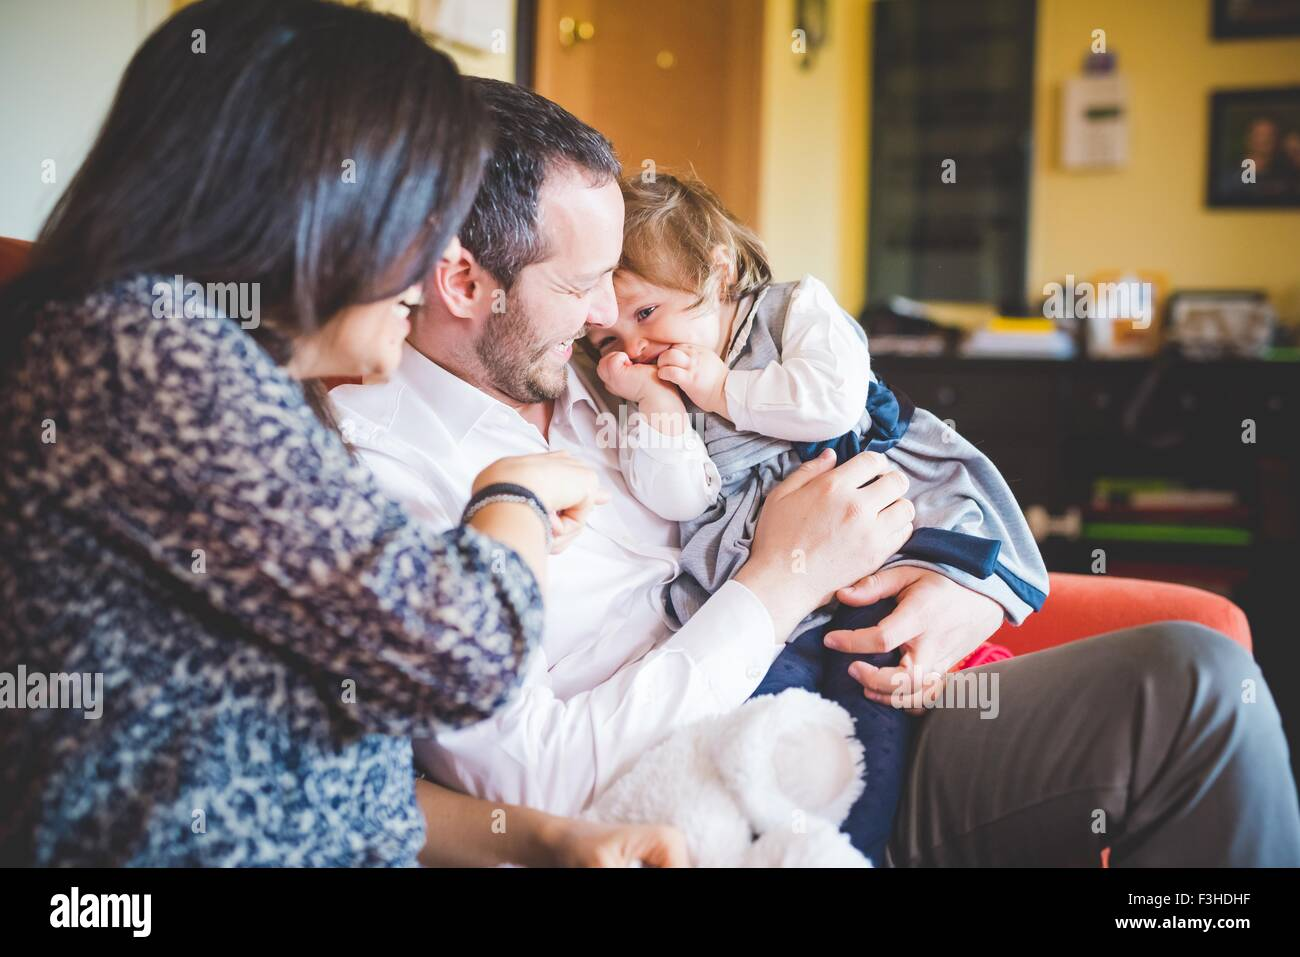 Shy female toddler sitting on fathers lap in living room - Stock Image